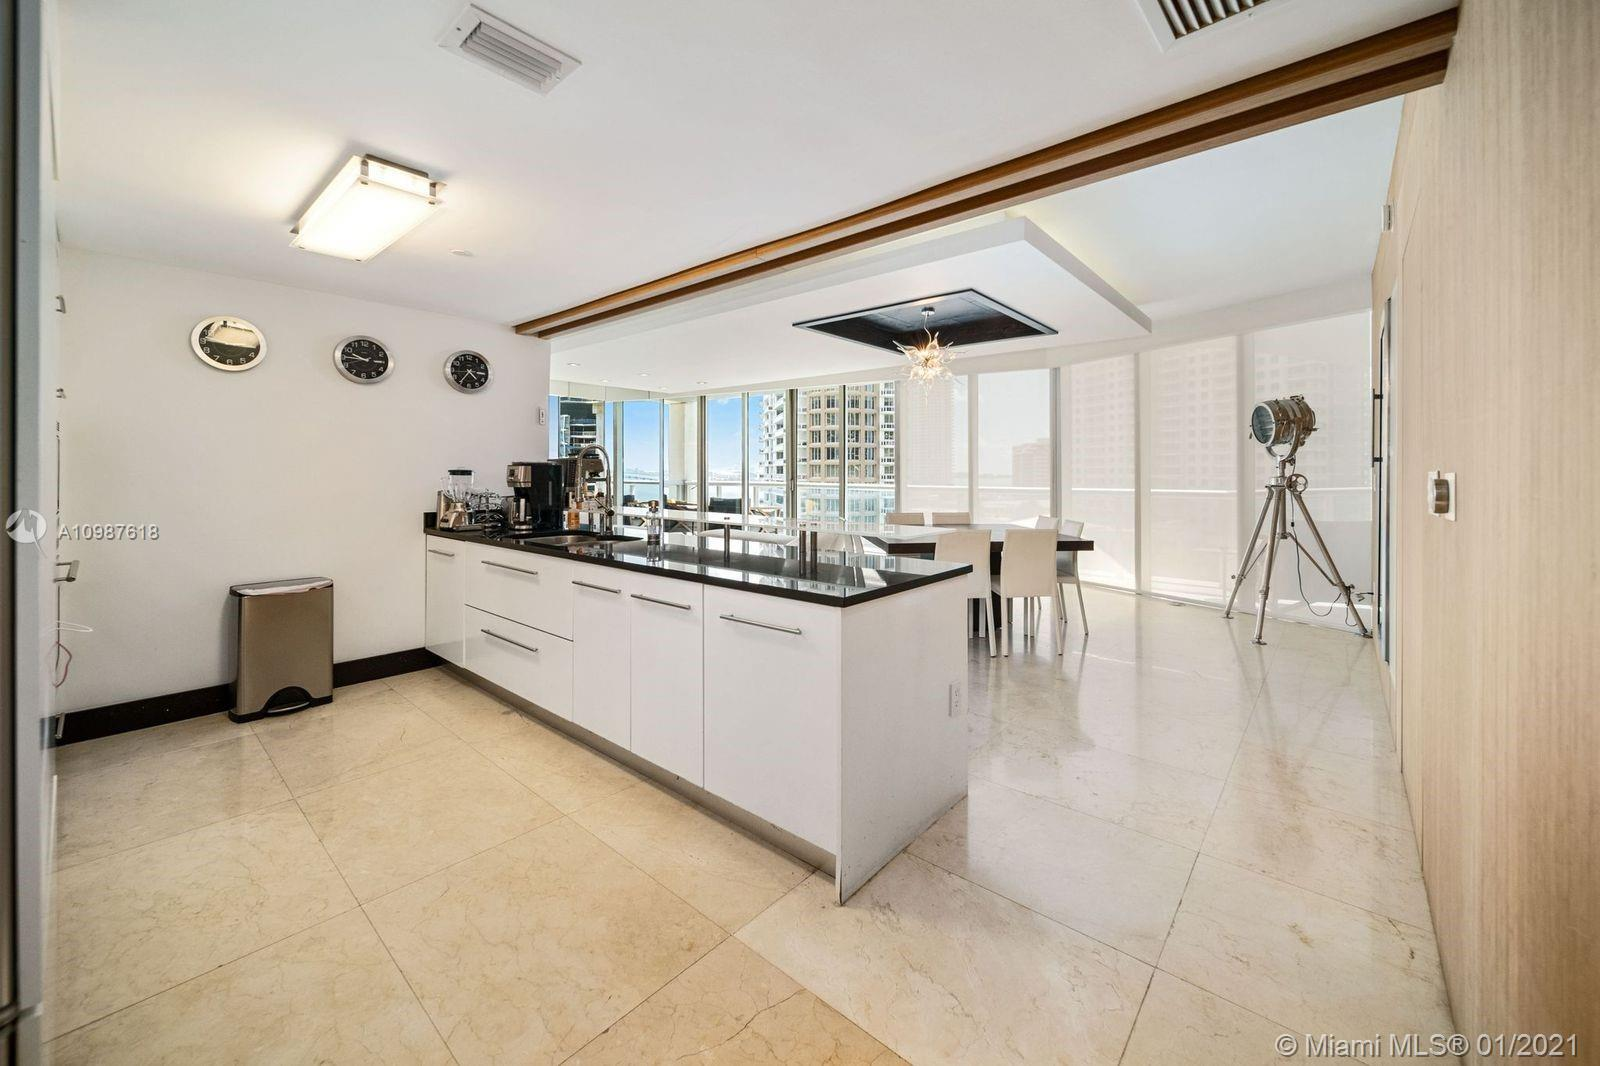 465 Brickell Ave # 1001, Miami, Florida 33131, 3 Bedrooms Bedrooms, ,3 BathroomsBathrooms,Residential,For Sale,465 Brickell Ave # 1001,A10987618